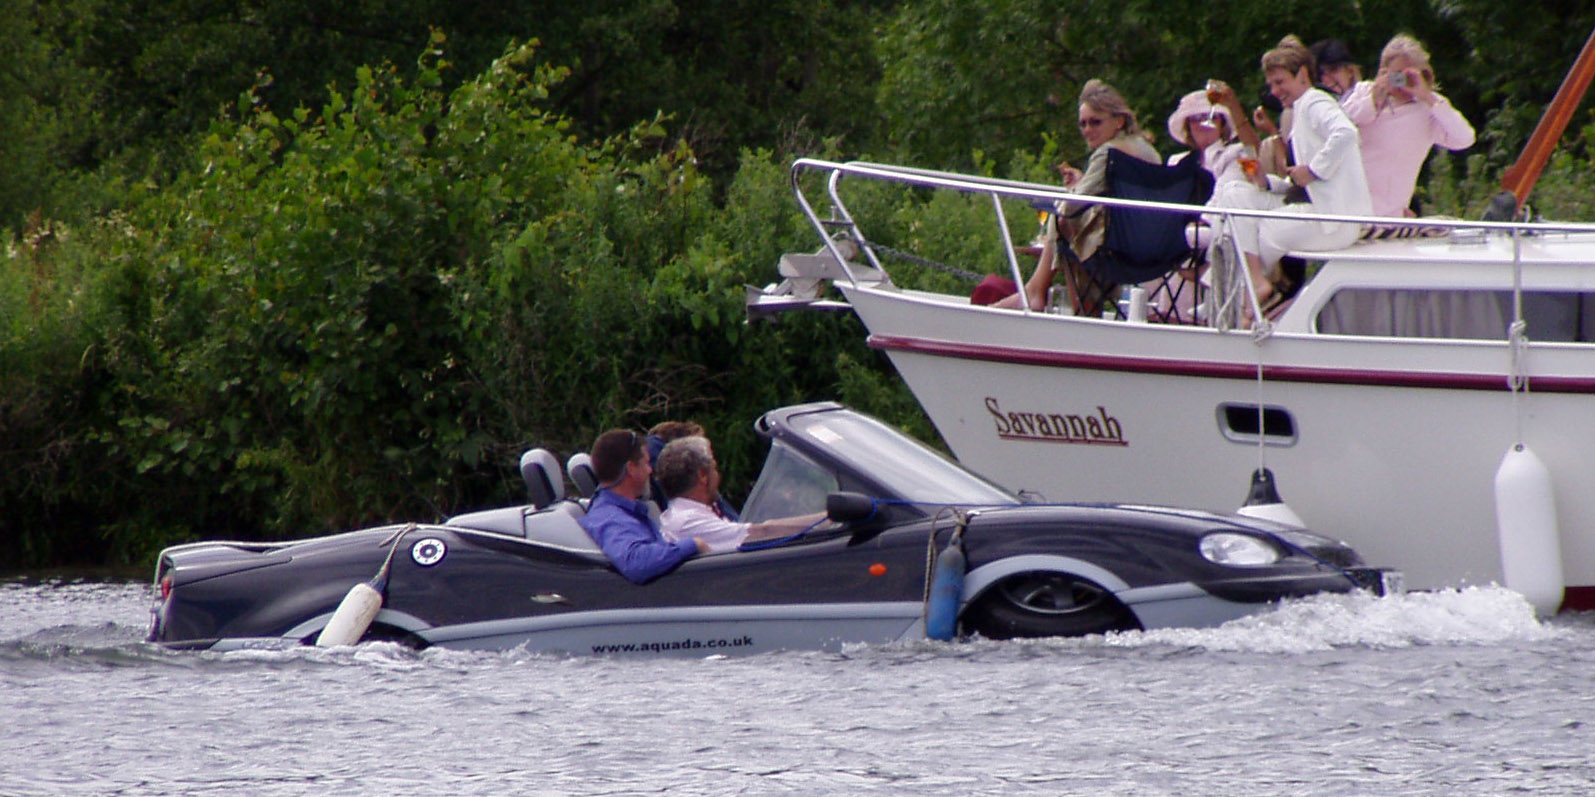 aquada car also a boat